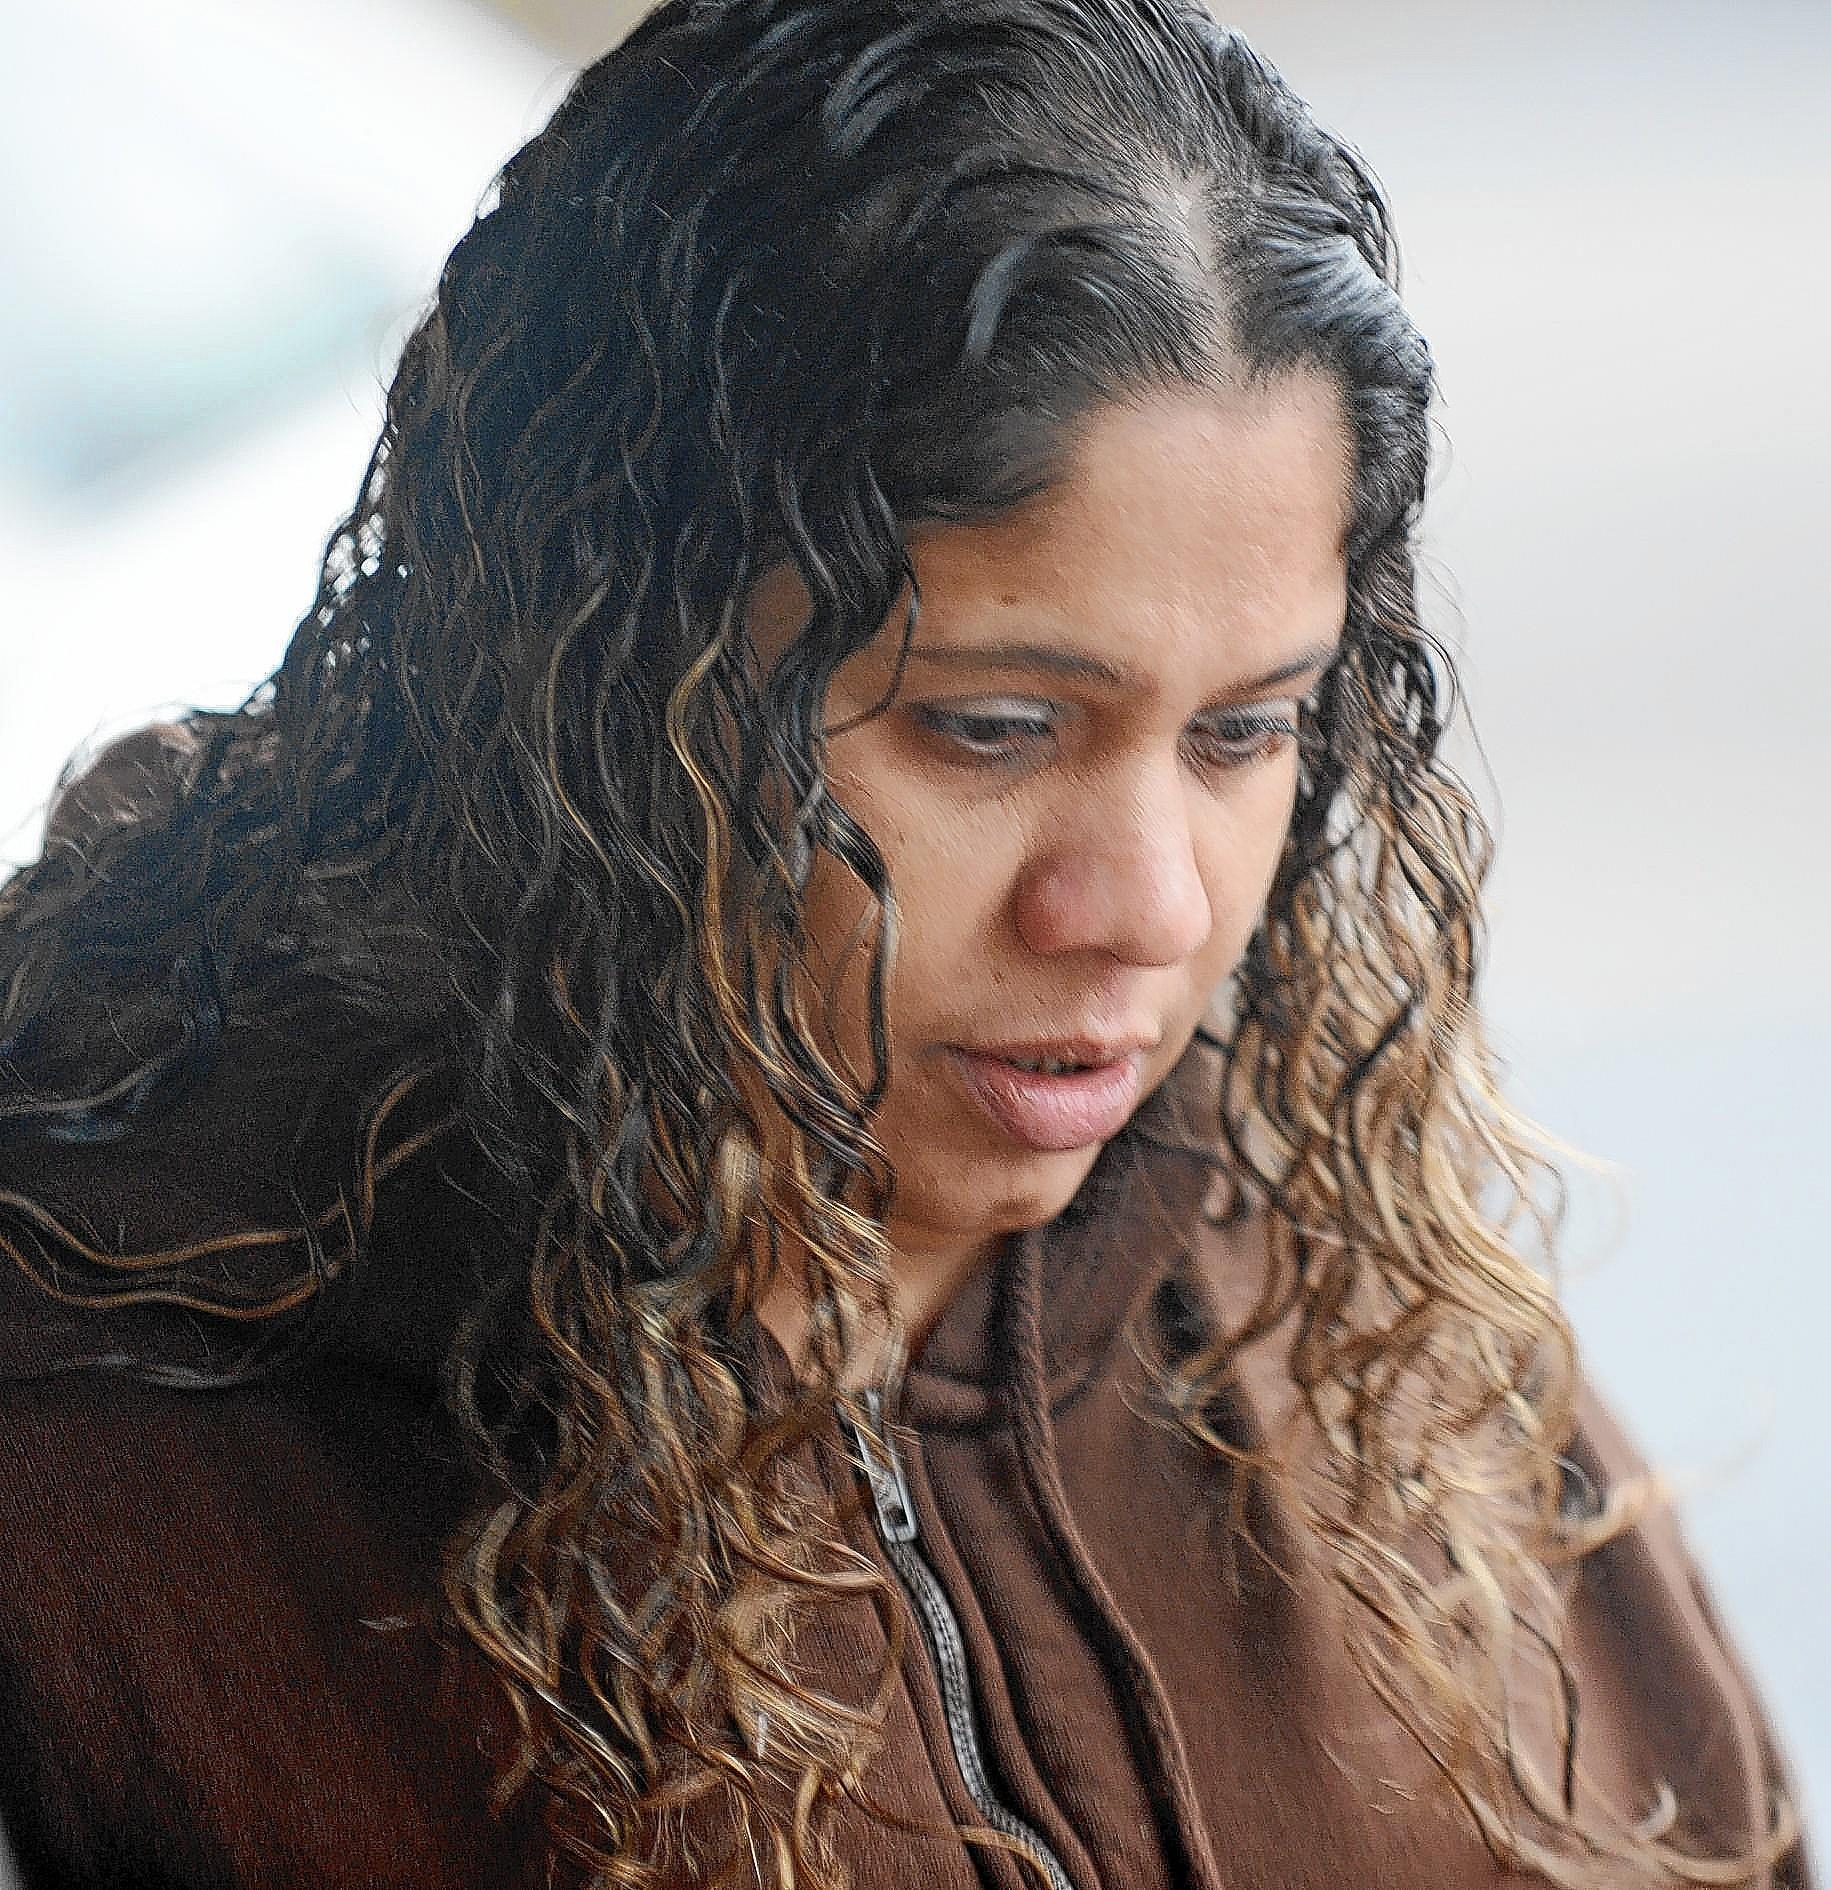 Theresa Leguillow Flores is on trial accused of stealing more than $103,000 from the Bethlehem YMCA.